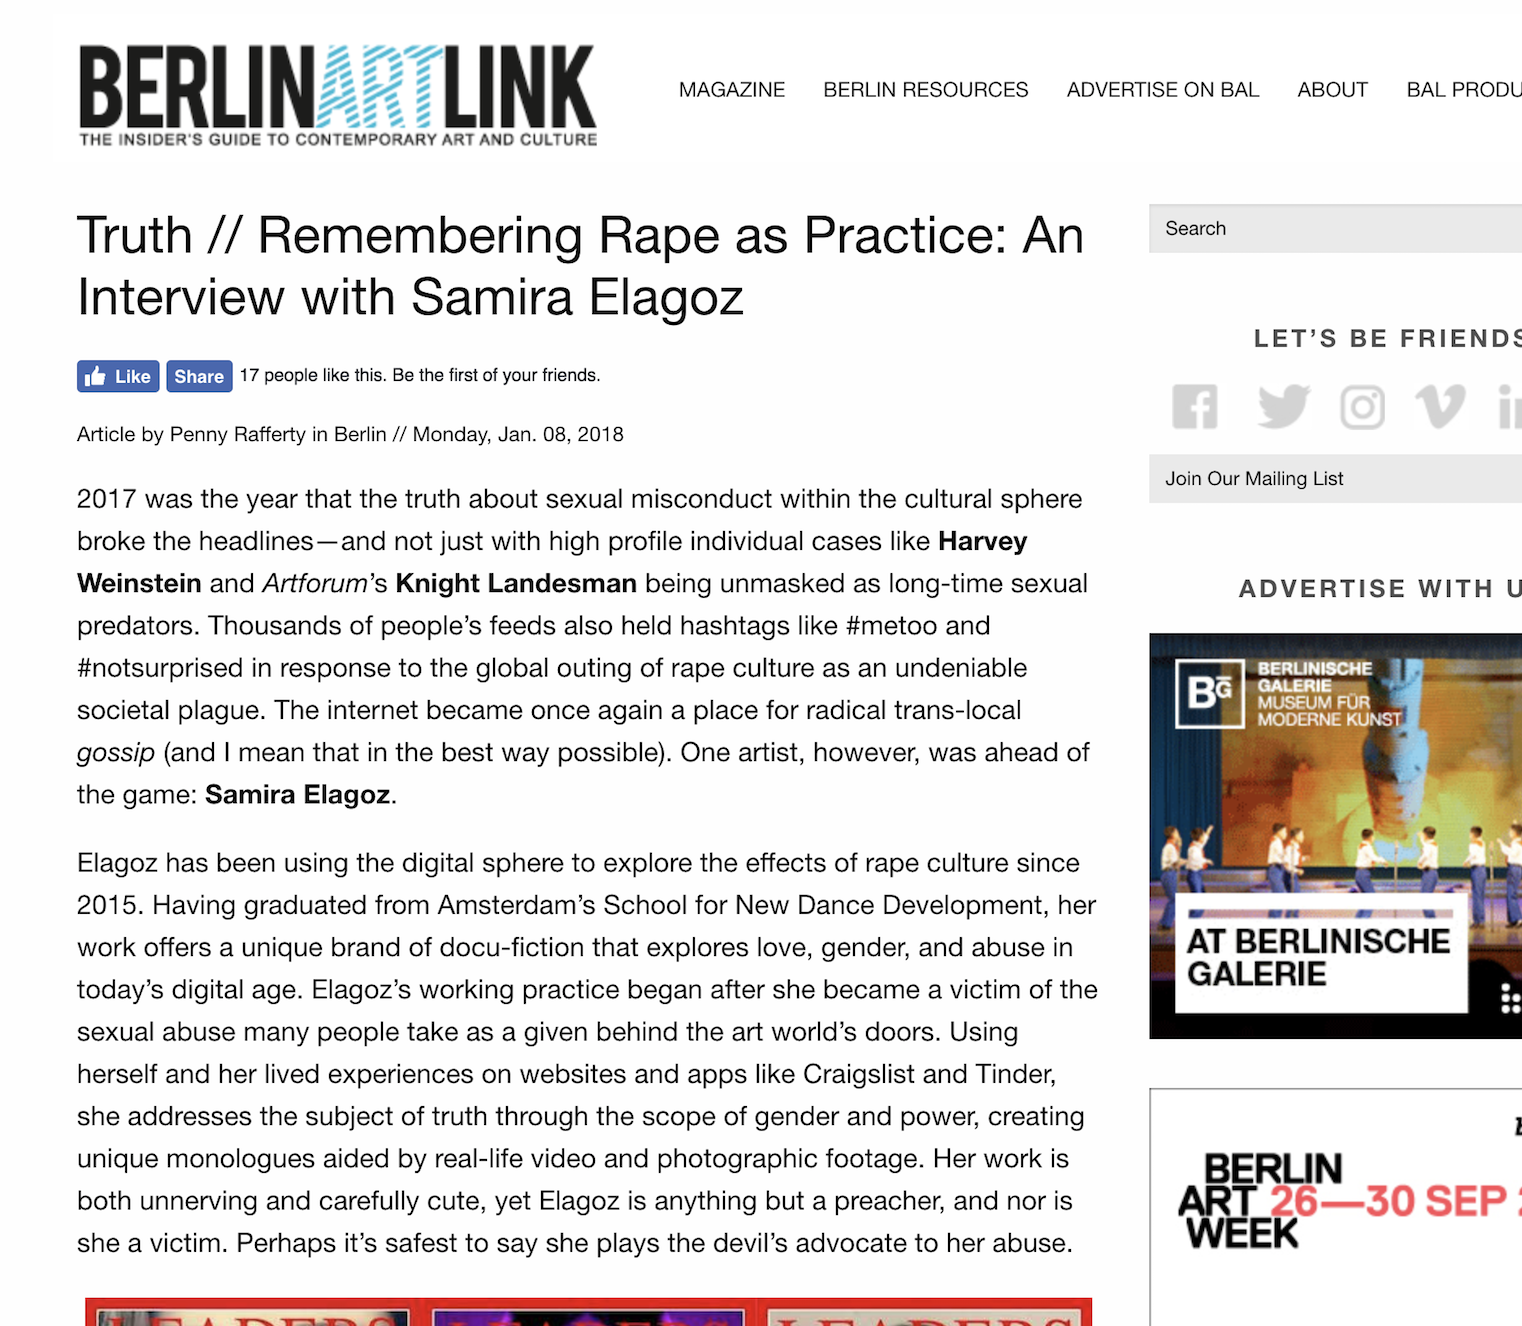 """BERLIN ART LINK     Interview:  """"One artist, however, was ahead of the game: Samira Elagoz. Elagoz has been using the digital sphere to explore the effects of rape culture since 2015."""""""